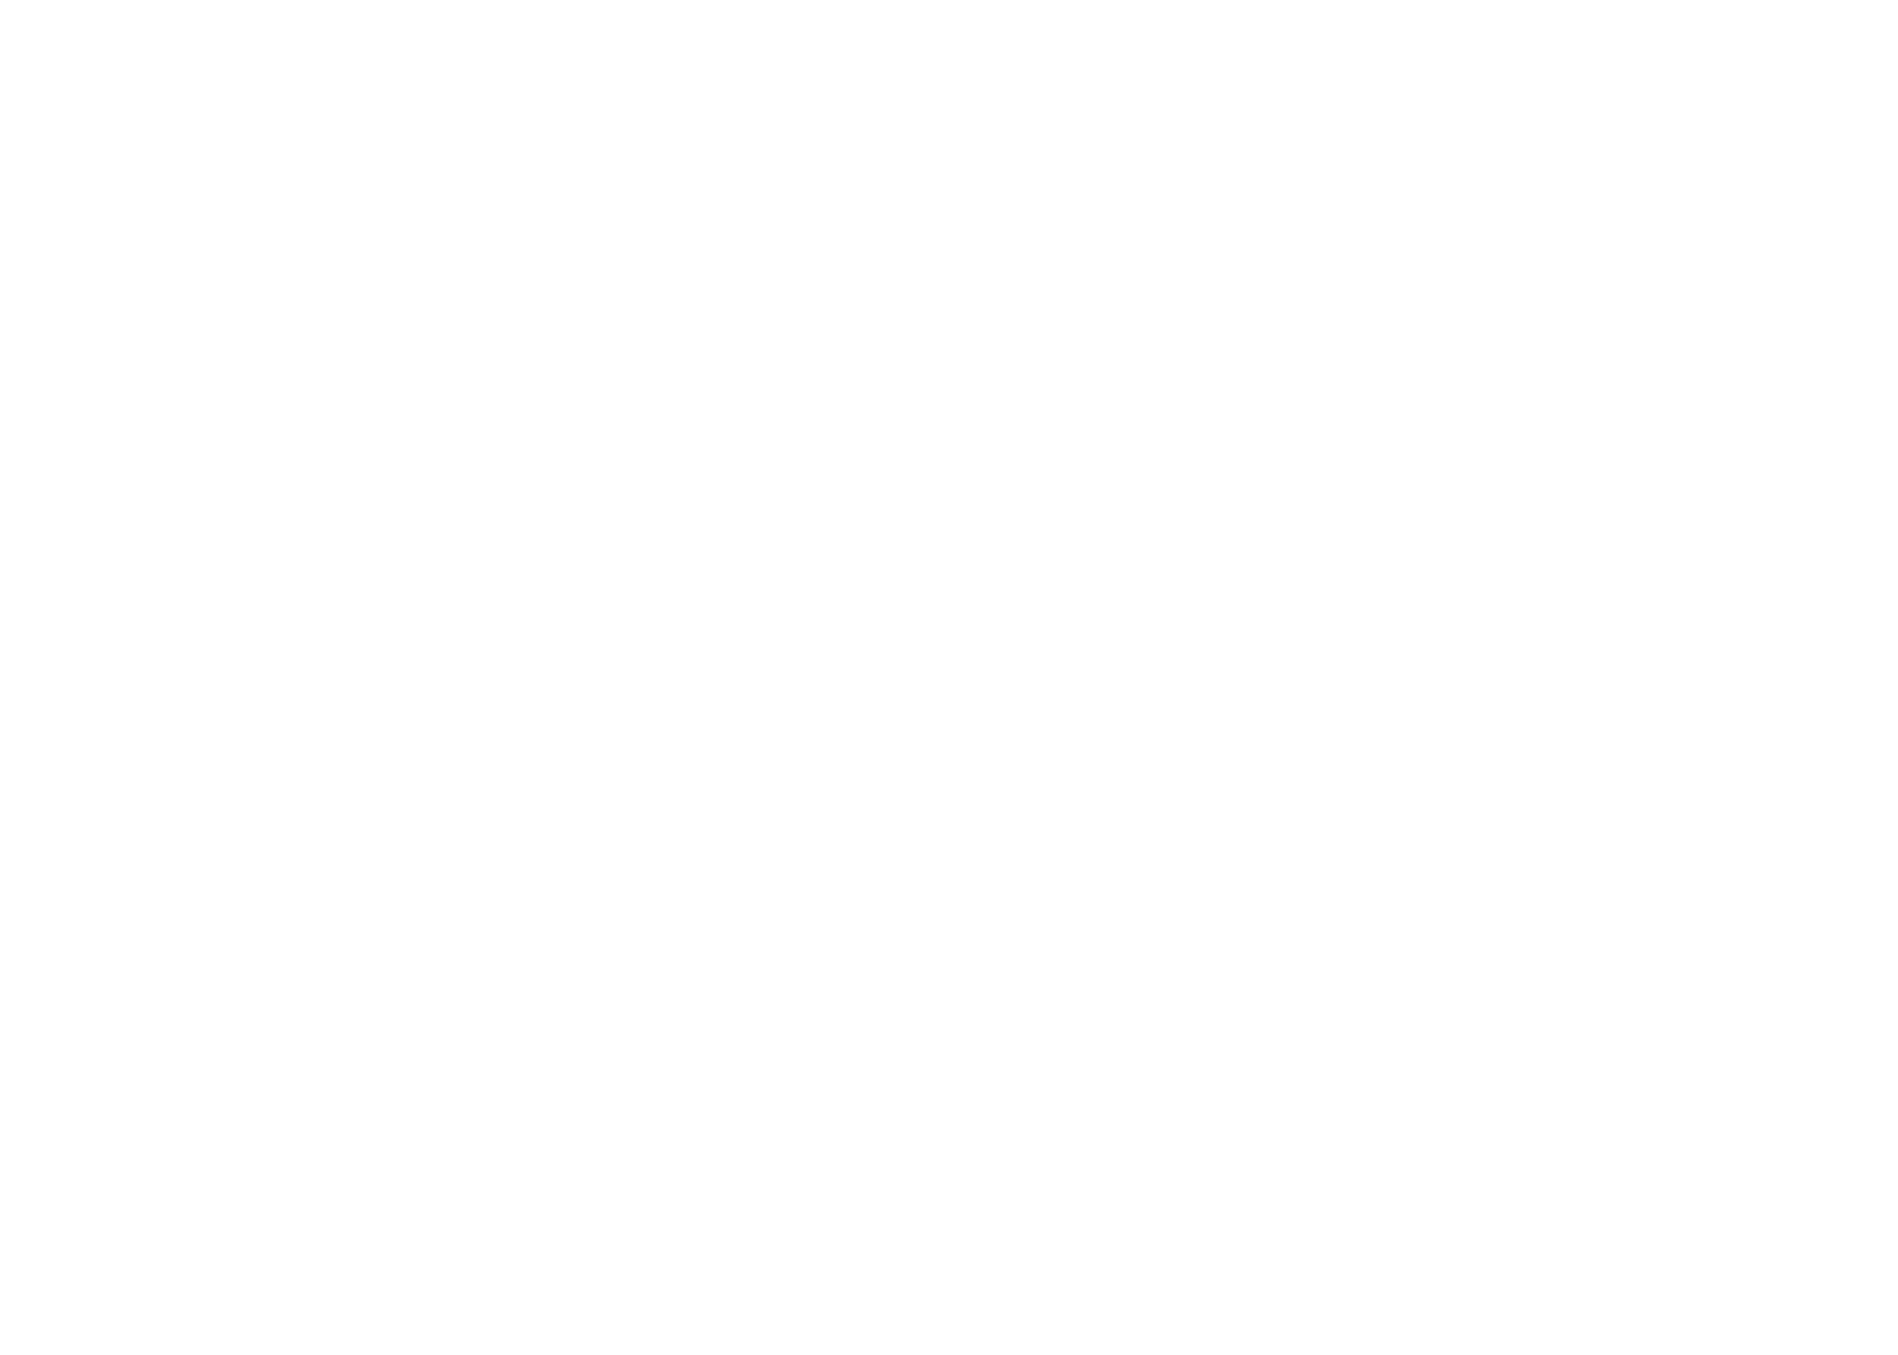 Mandy McNeil International.